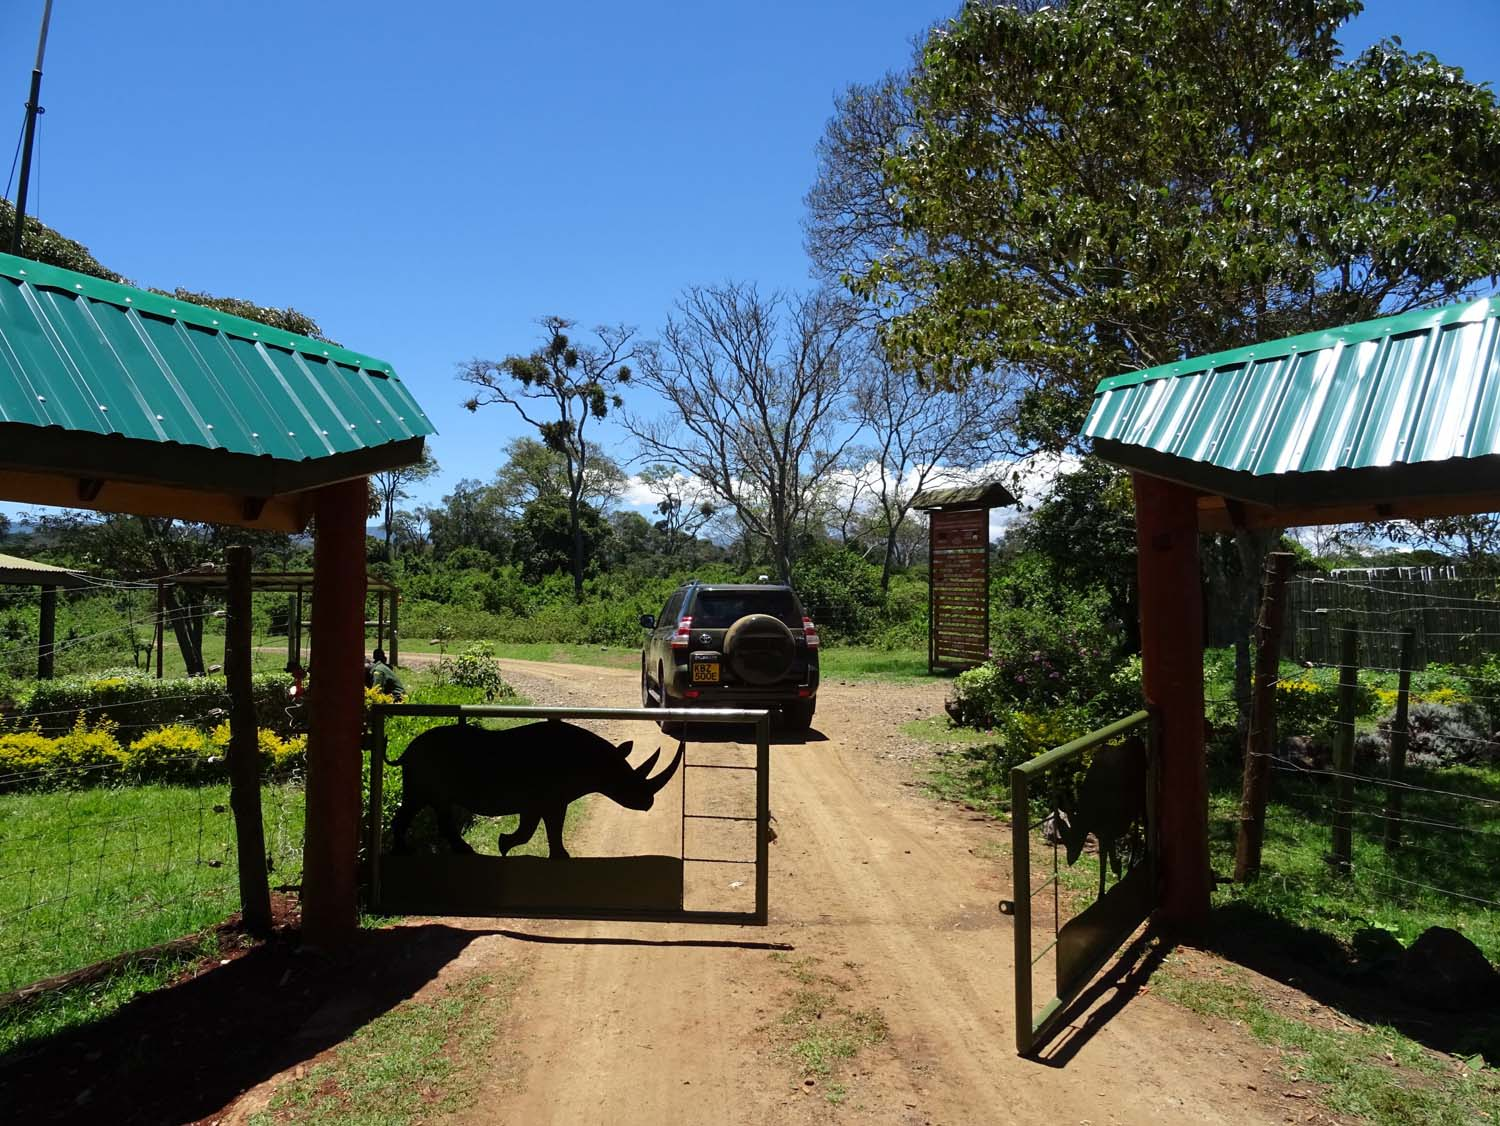 Ark entrance gate to the Aberdares NP